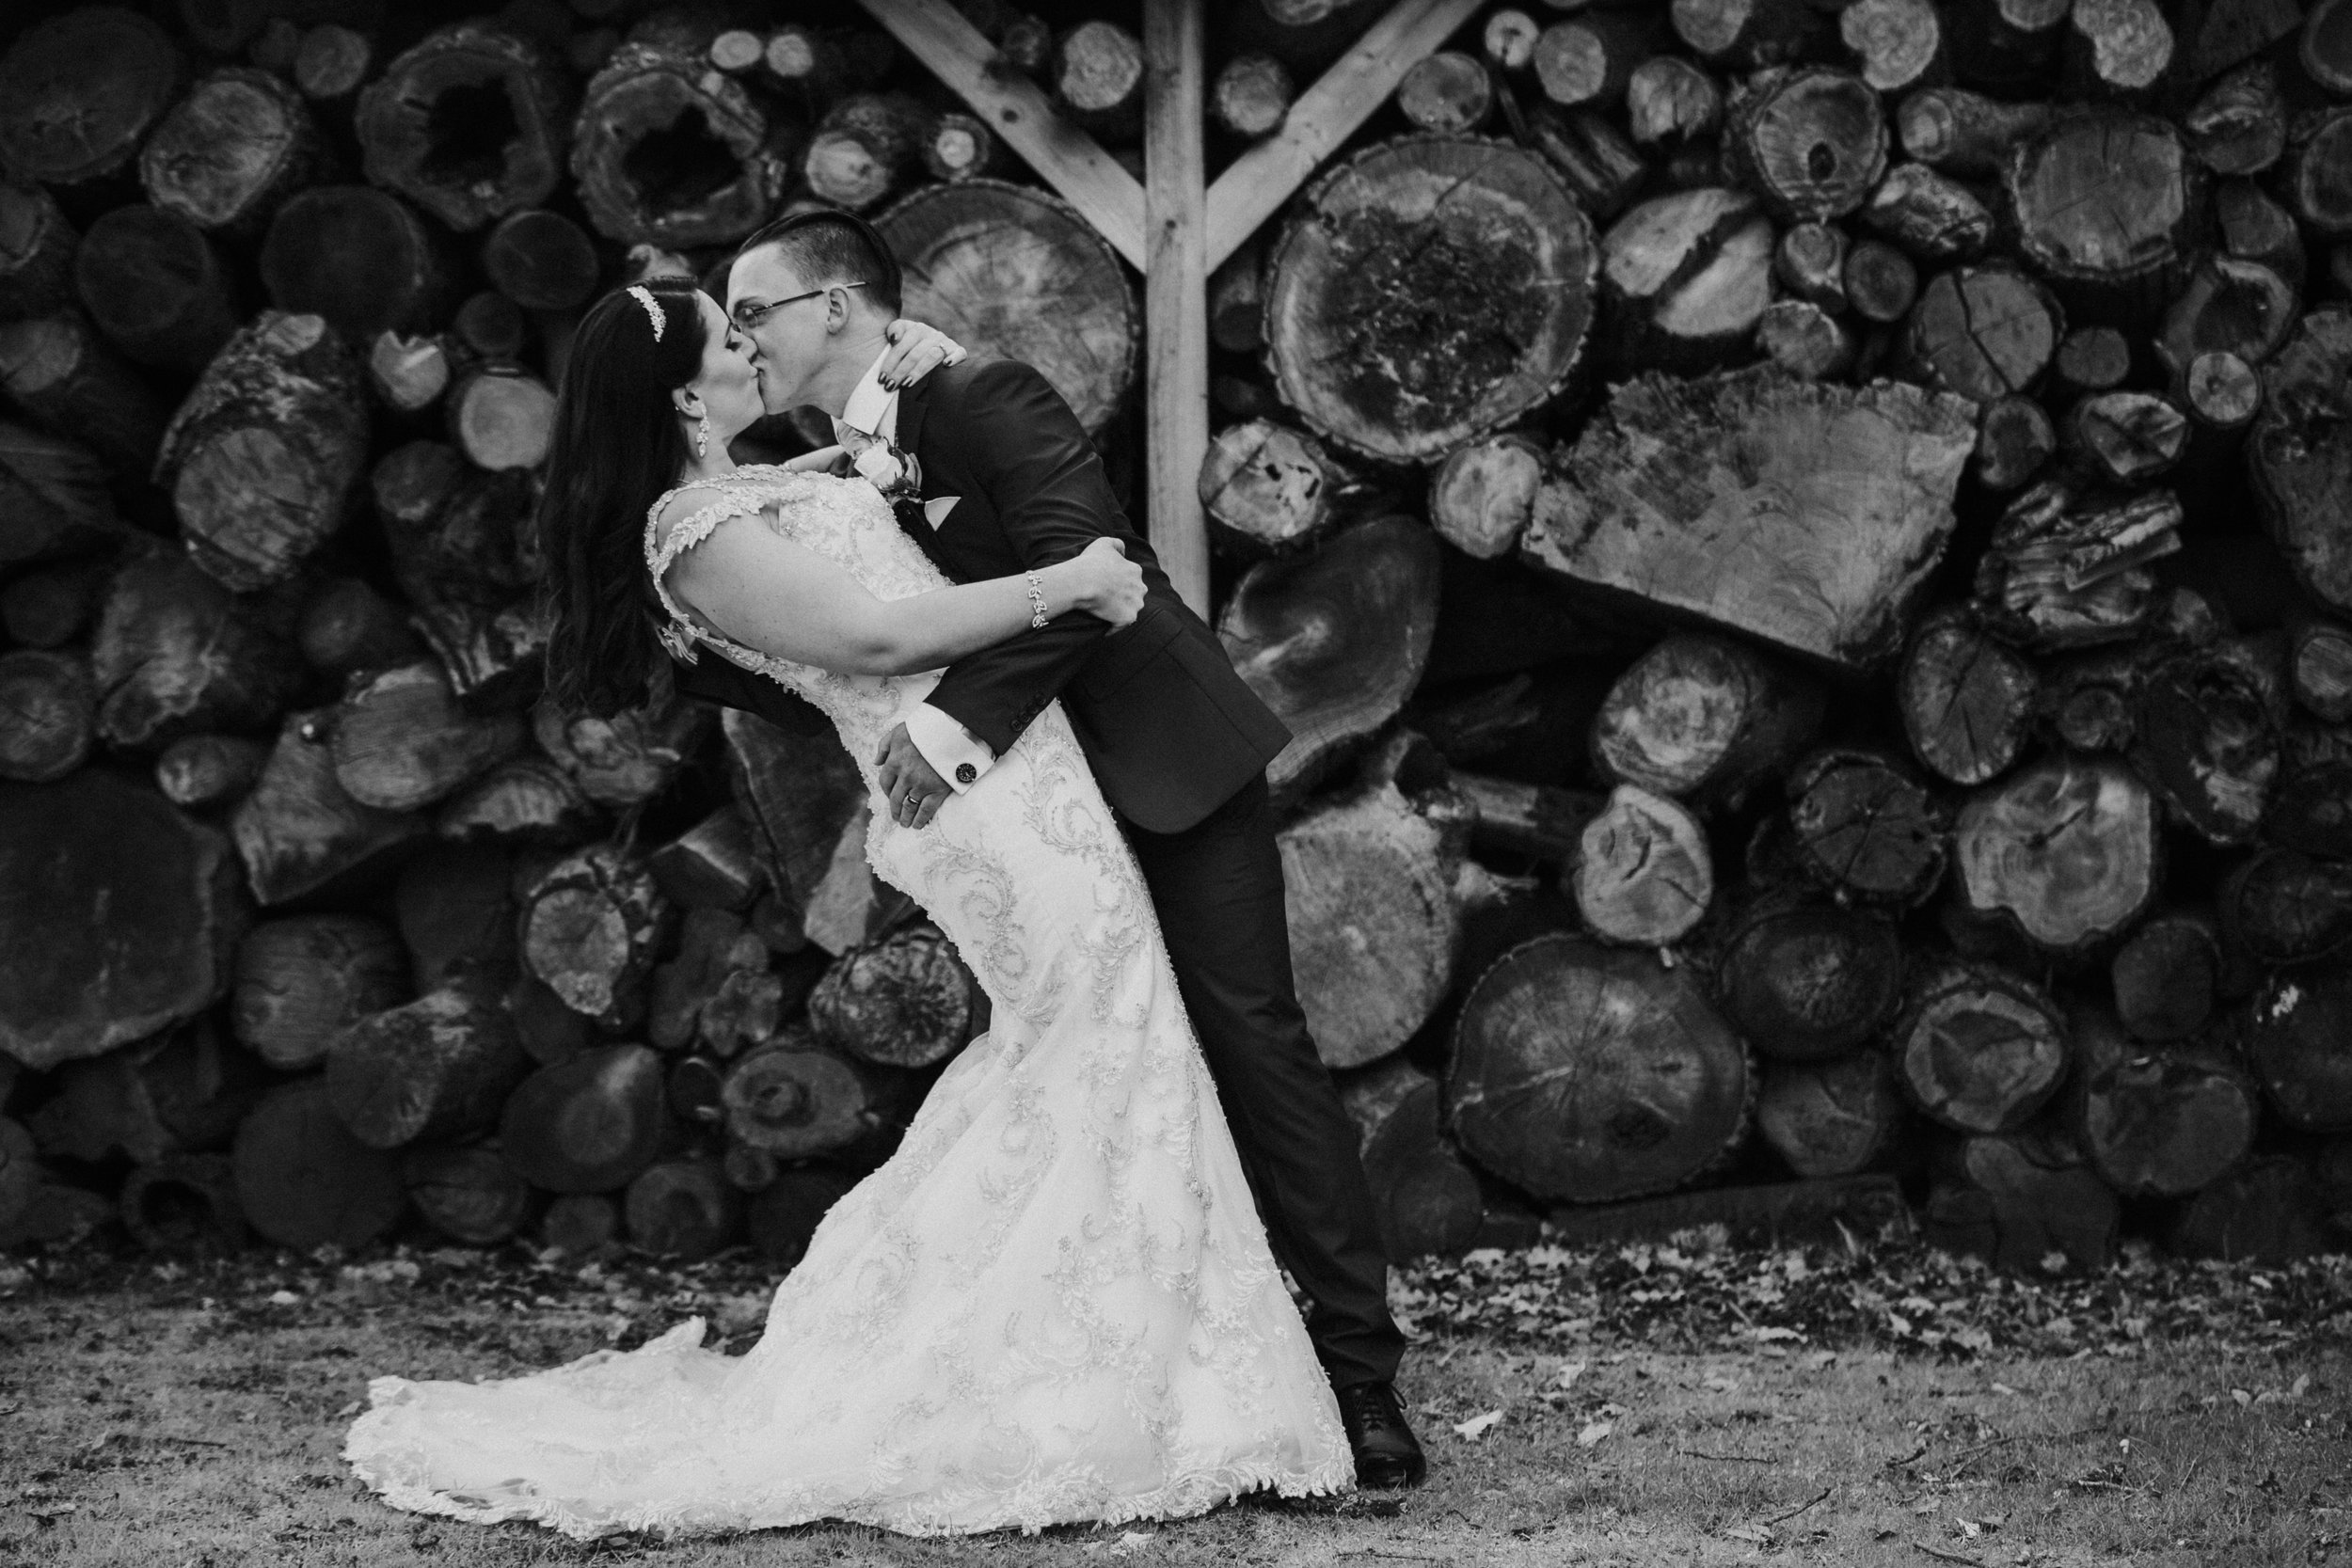 northbrook-park-farnham-hamnpshire-winter-spring-wedding-photography-couple-portrait-49